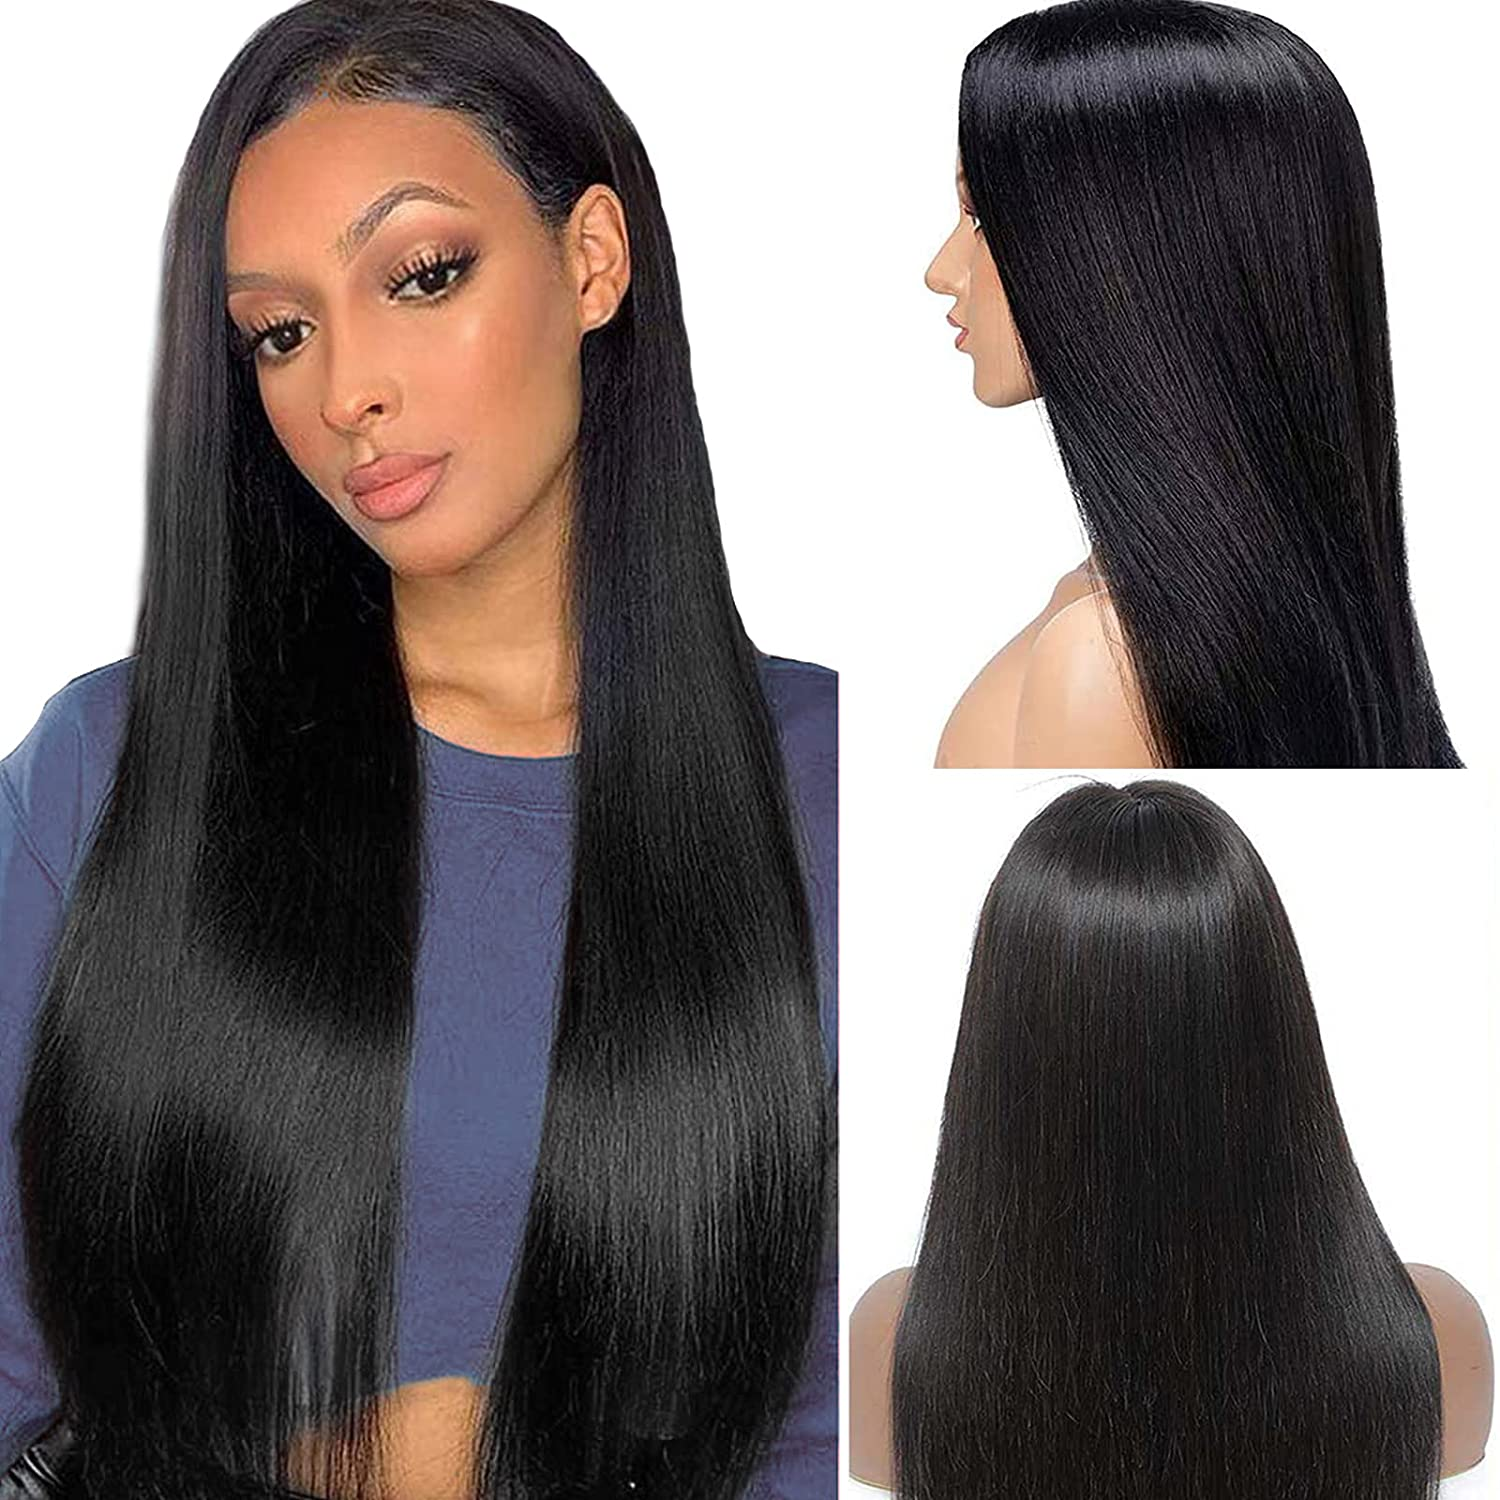 Mgsdjie Lace Front 5 ☆ popular Wigs Human Hair Density Pre Plucked with Award 150%